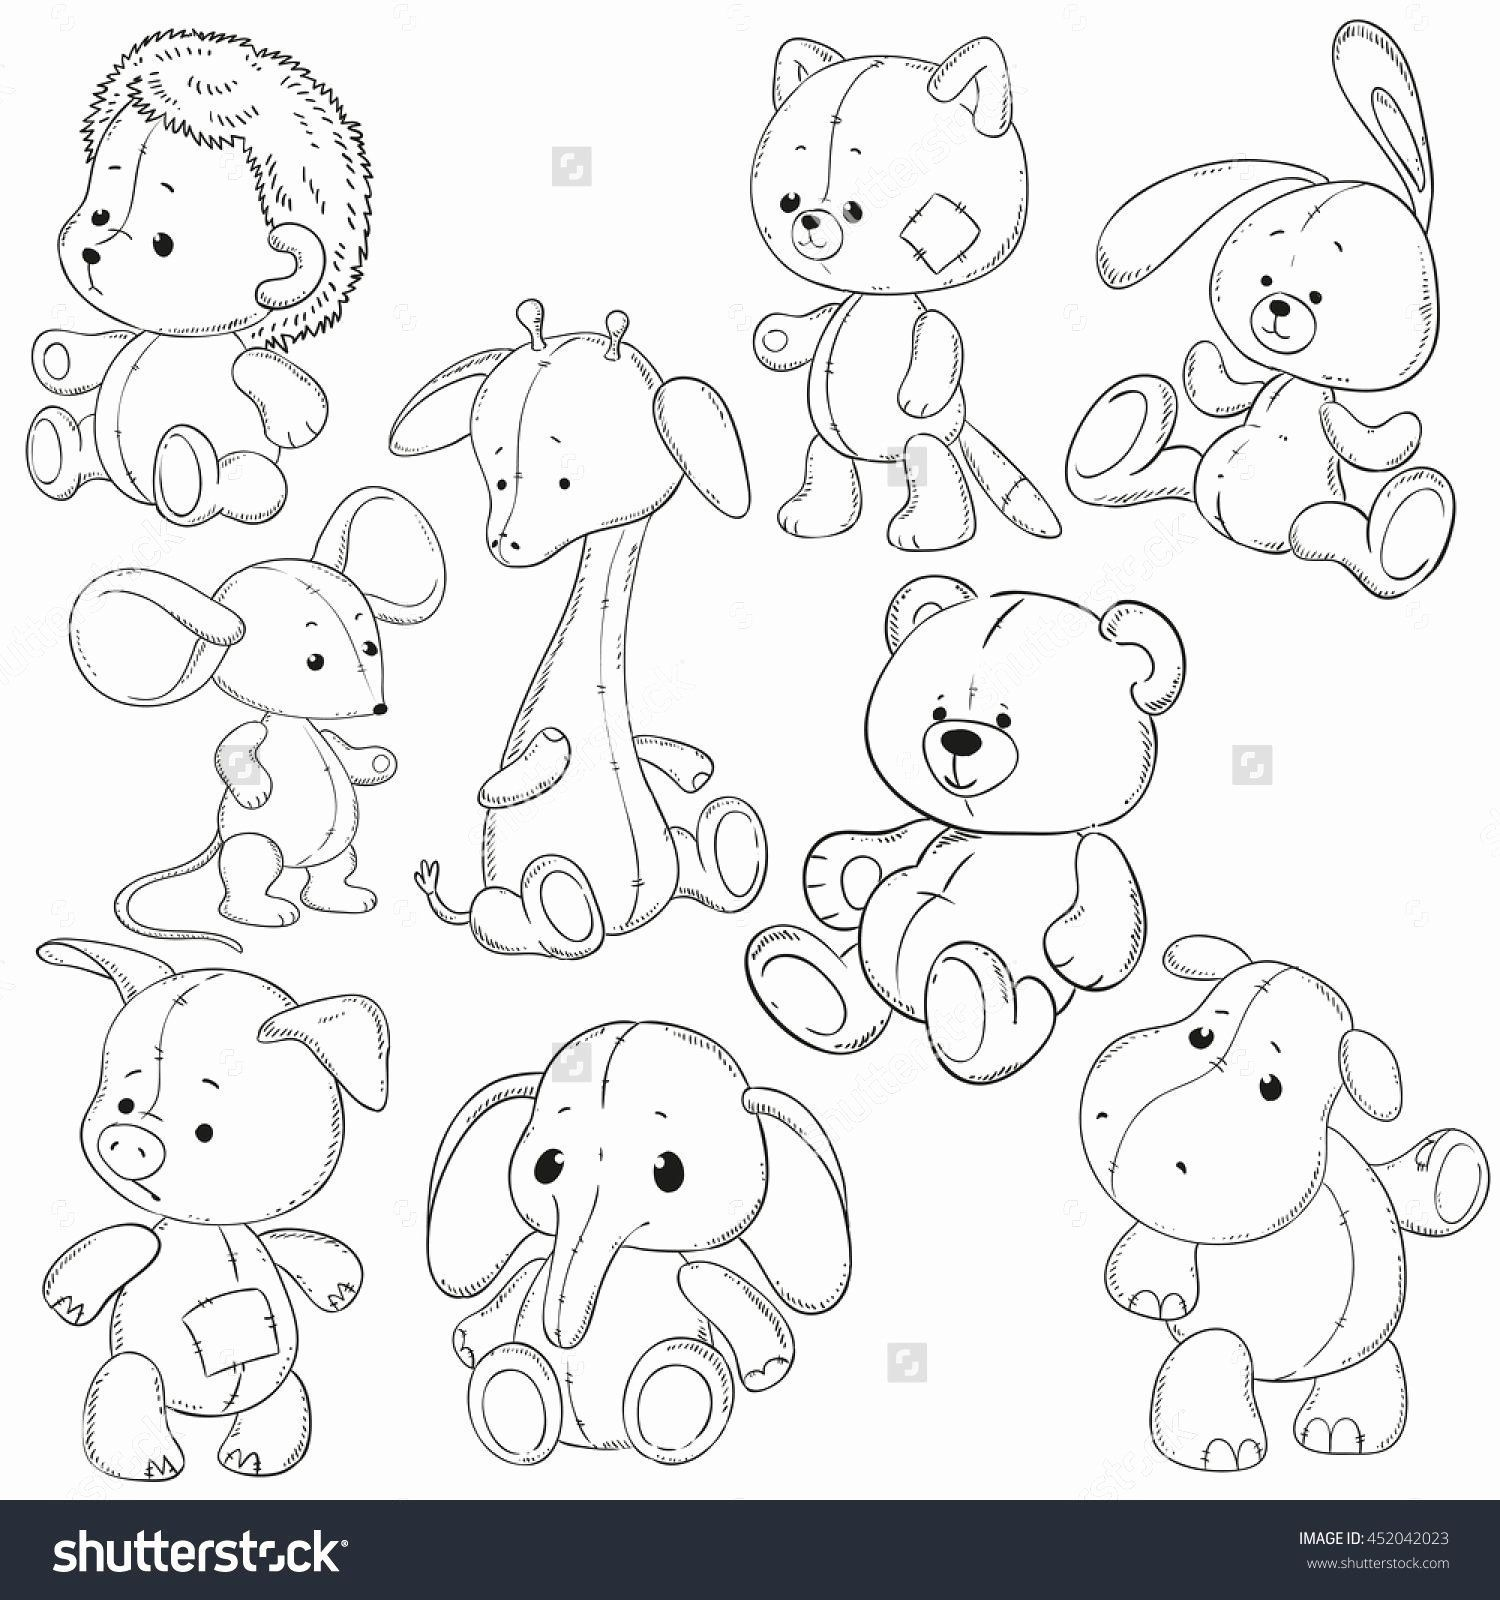 Toys Coloring Book Pdf Inspirational Collection Wolf Stuffed Animal Coloring Pag Toys Coloring Book Coloring Books Cute Animal Drawings Baby Animal Drawings